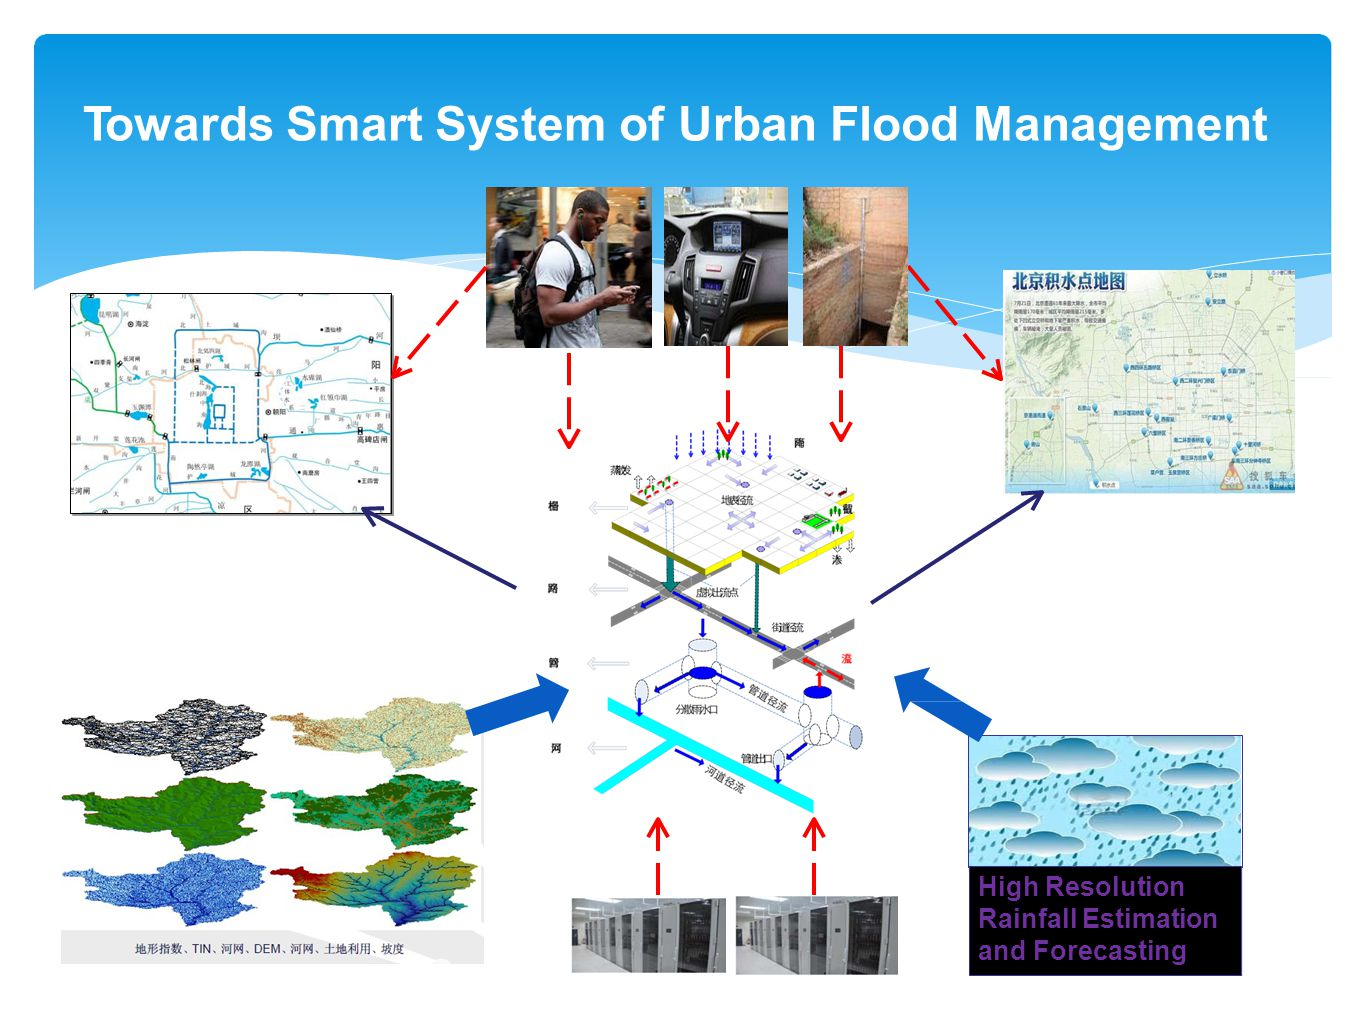 Towards Smart System of Urban Flood Management High Resolution Rainfall Estimation and Forecasting